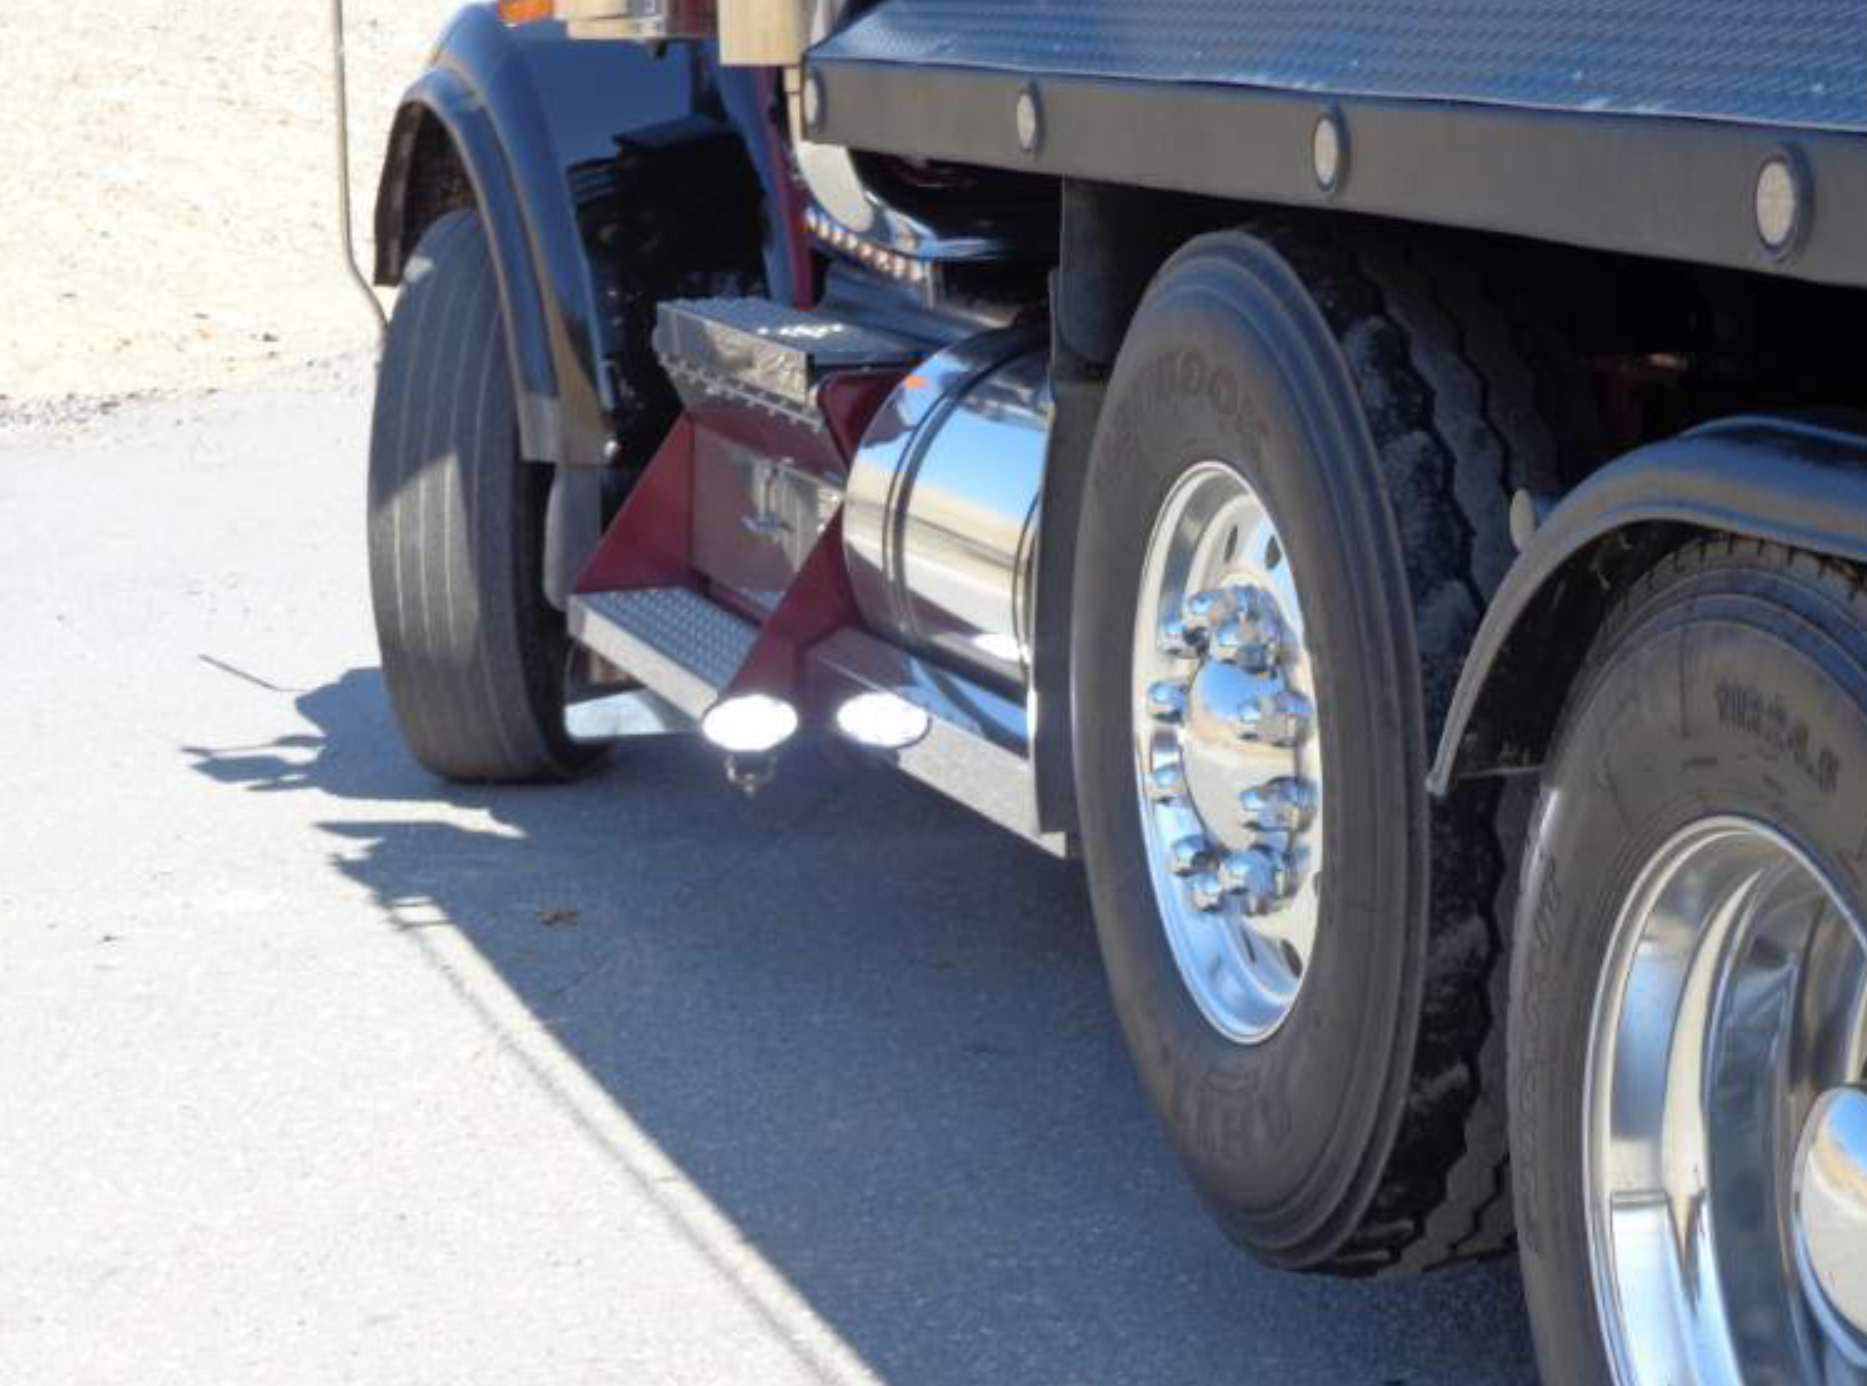 The placement of this oval-shaped LED allows it to shine toward the paver, illuminating the wheels and the area where the paver's push roller will come in contact with the back tire. The driver wants to see that there is nothing between his vehicle and the paver as he's backing.